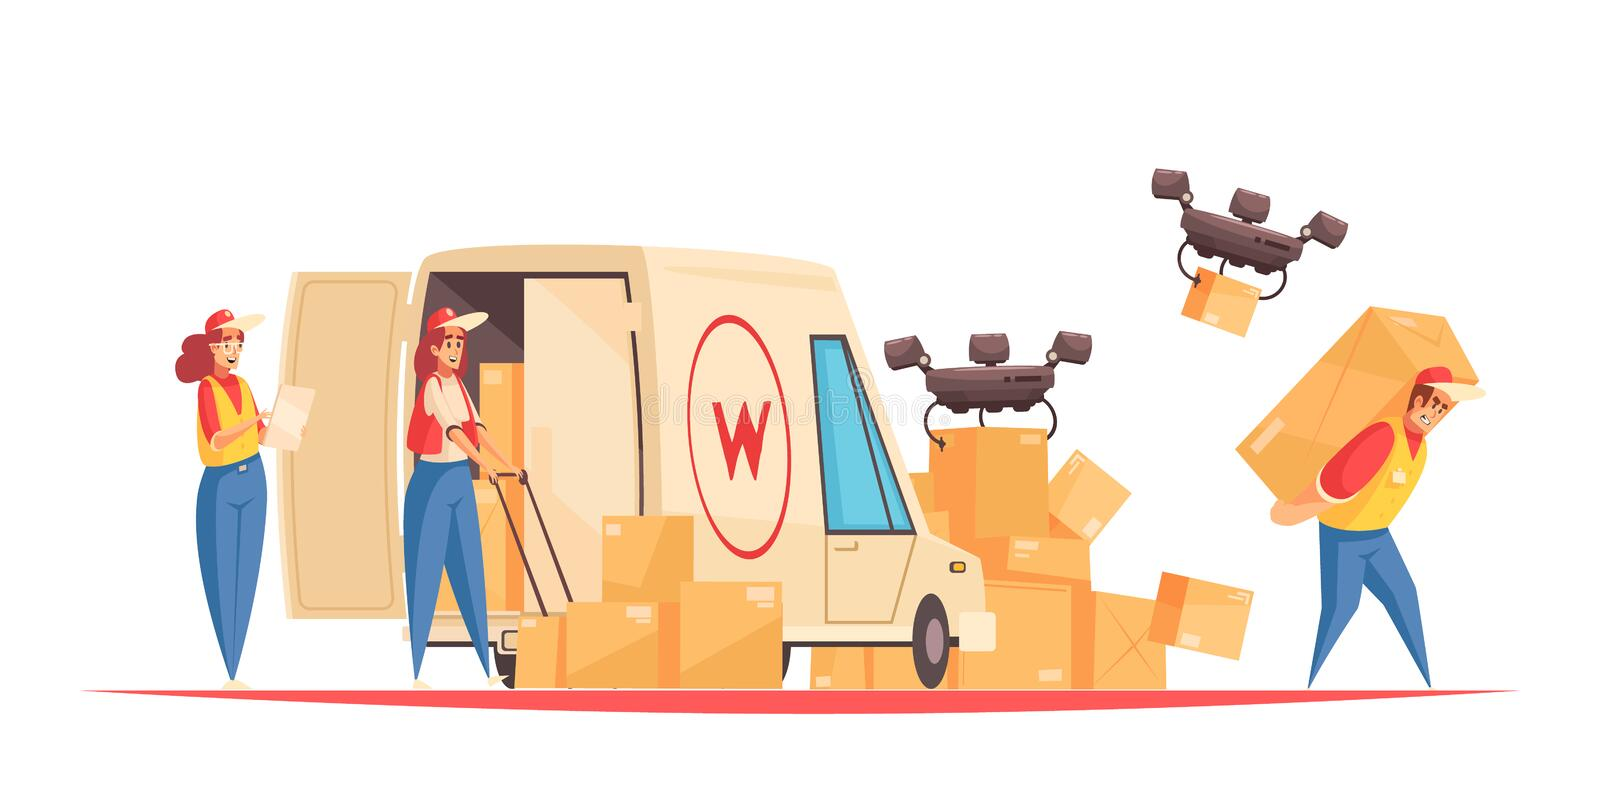 Delivery Logistics Doodle Composition. Delivery composition with postal service employees doodle characters with van and quadcopter drones shipping parcel boxes stock illustration